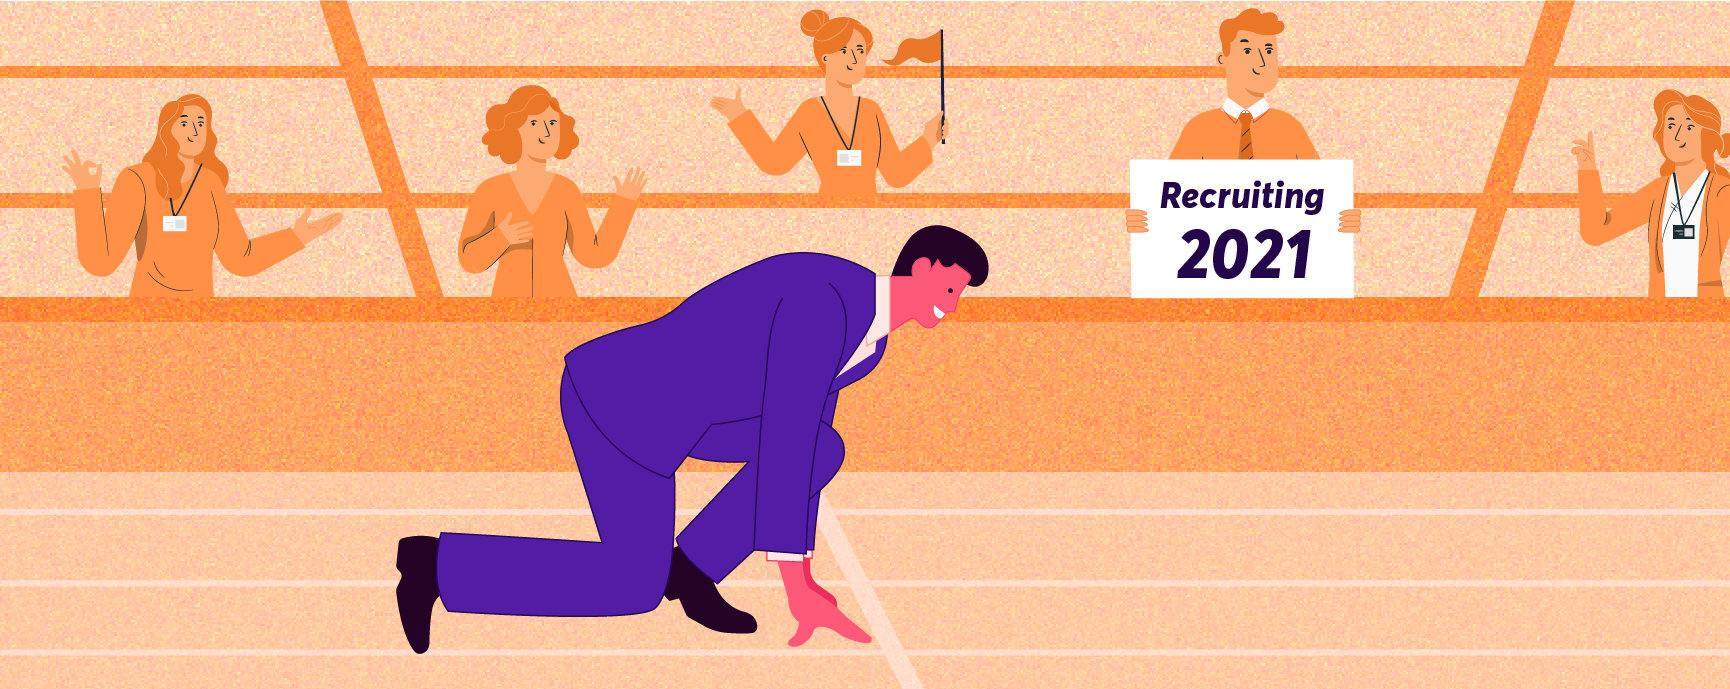 Recruiting Secrets for 2021 - A Talent Acquisition Guide